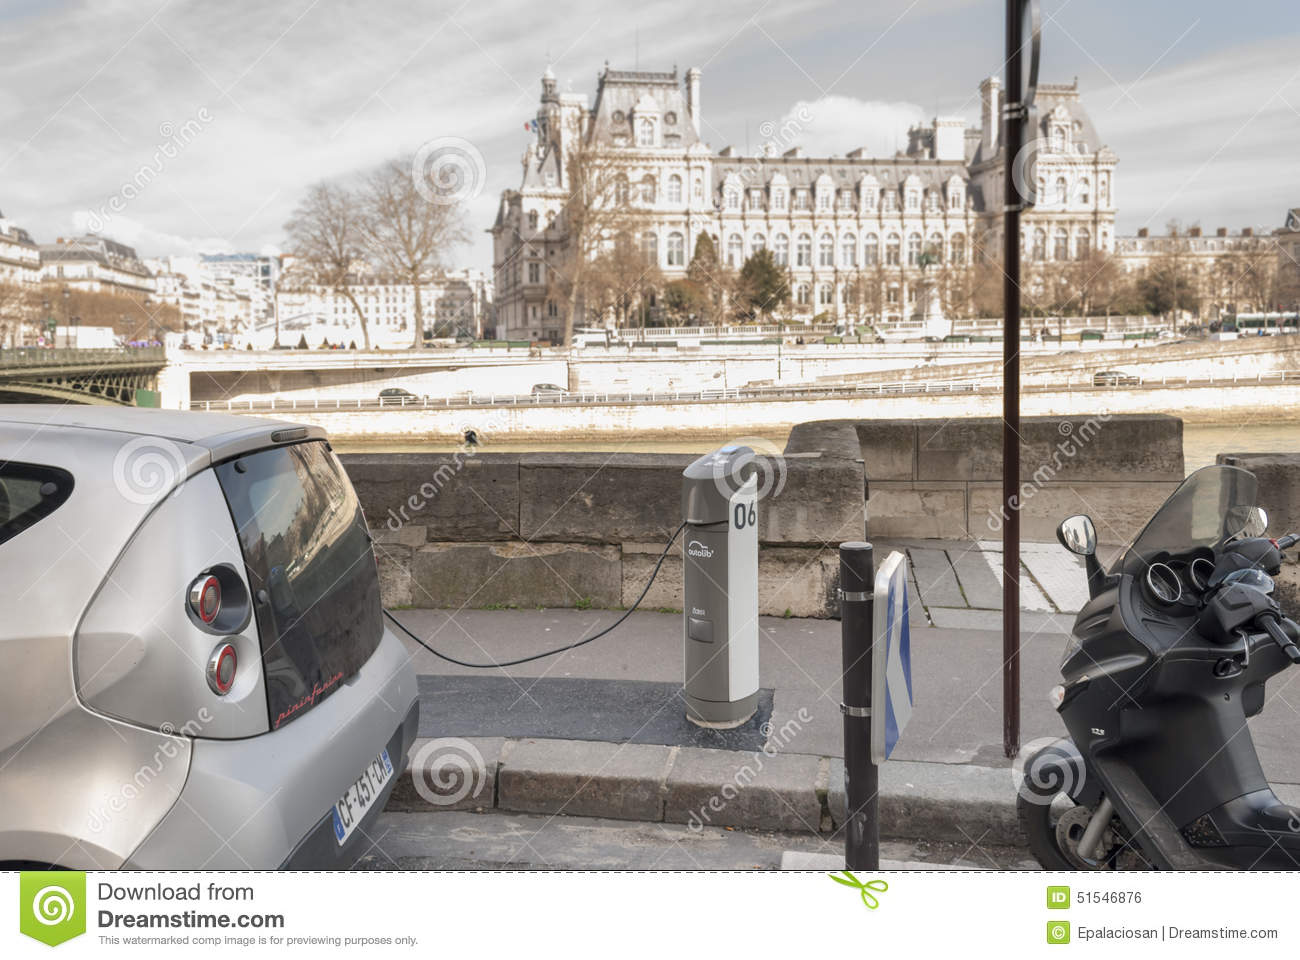 Lastest Autolib Electric Car Sharing Service In Paris France